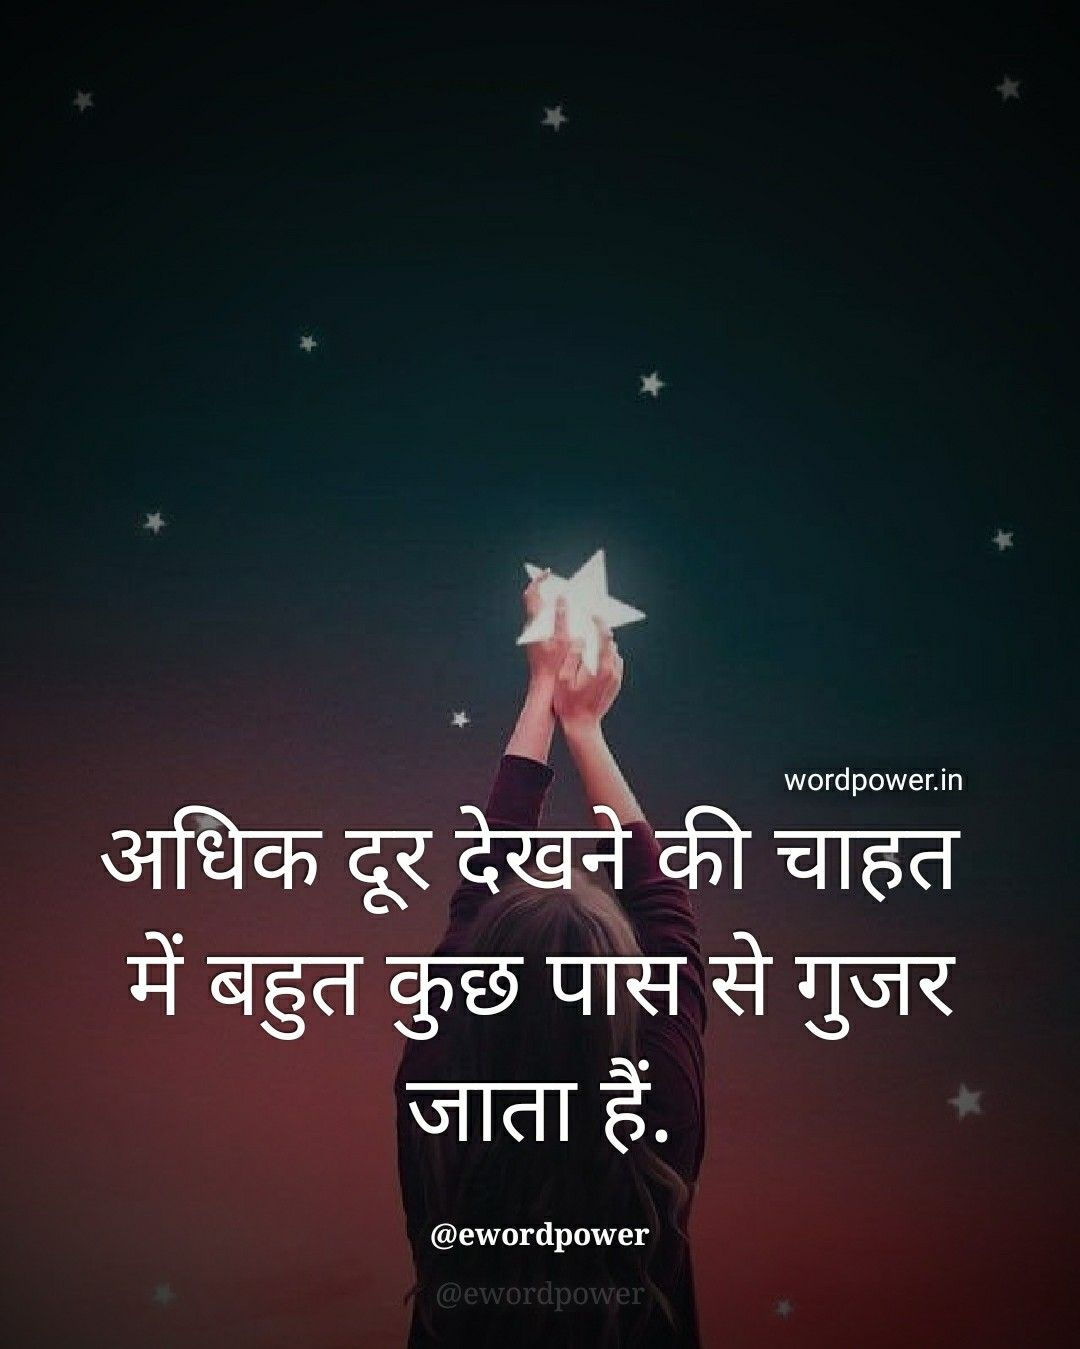 Best Hindi Motivational This Quotes Change Your Life - Famous